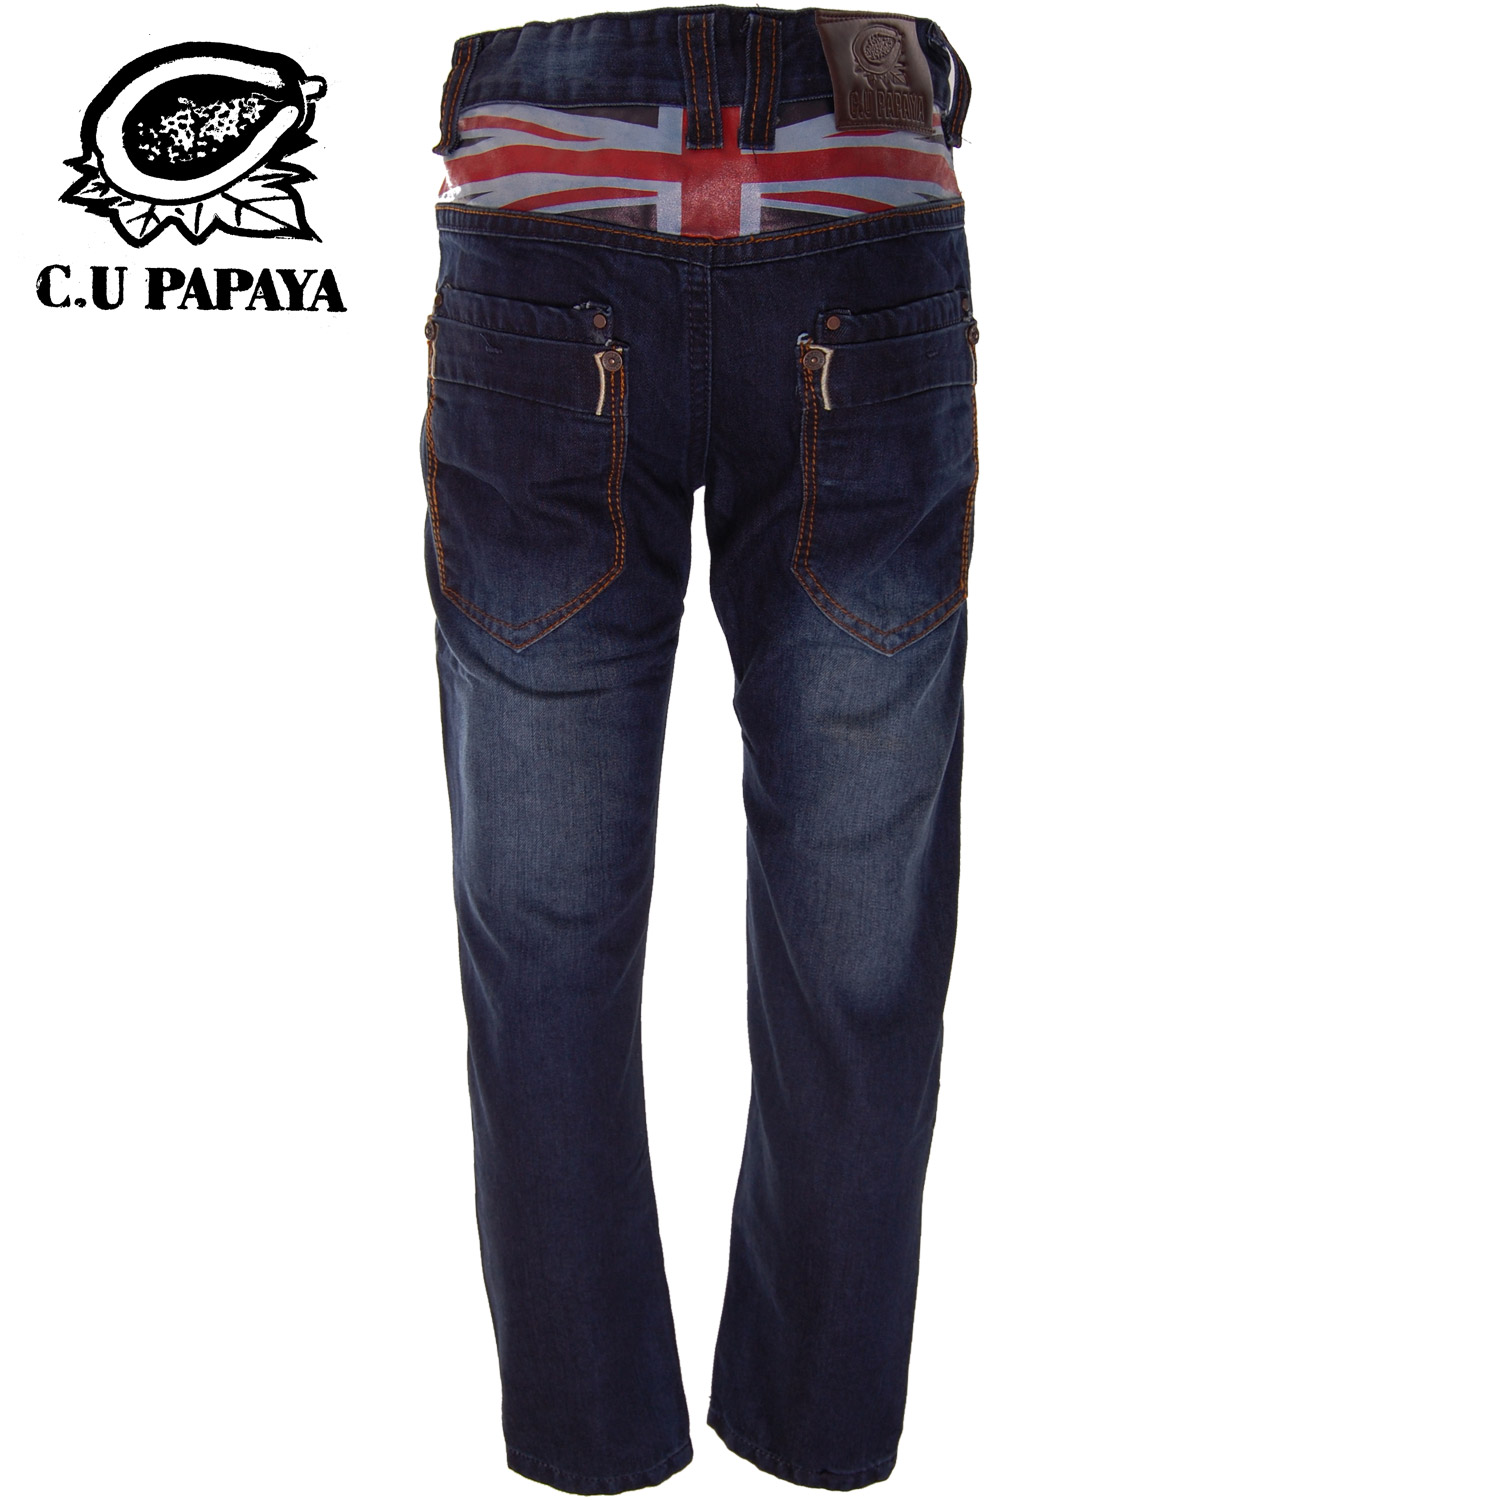 jeanshose jungen jeans hose british flag c u papaya by chilong. Black Bedroom Furniture Sets. Home Design Ideas